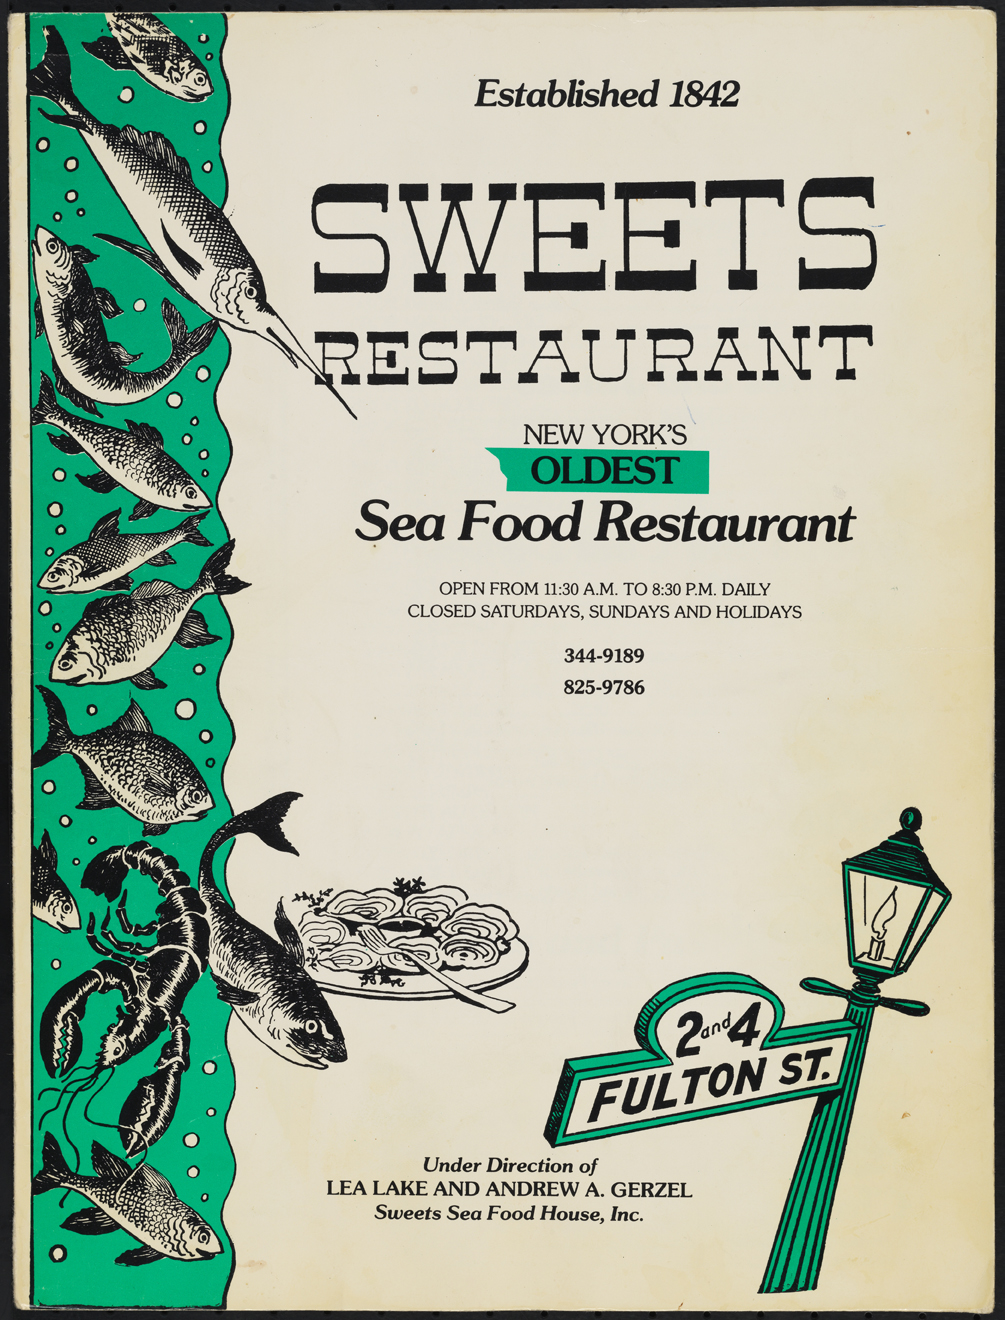 Sweets Restaurant. 1975-1992. Museum of the City of New York. 97.146.343